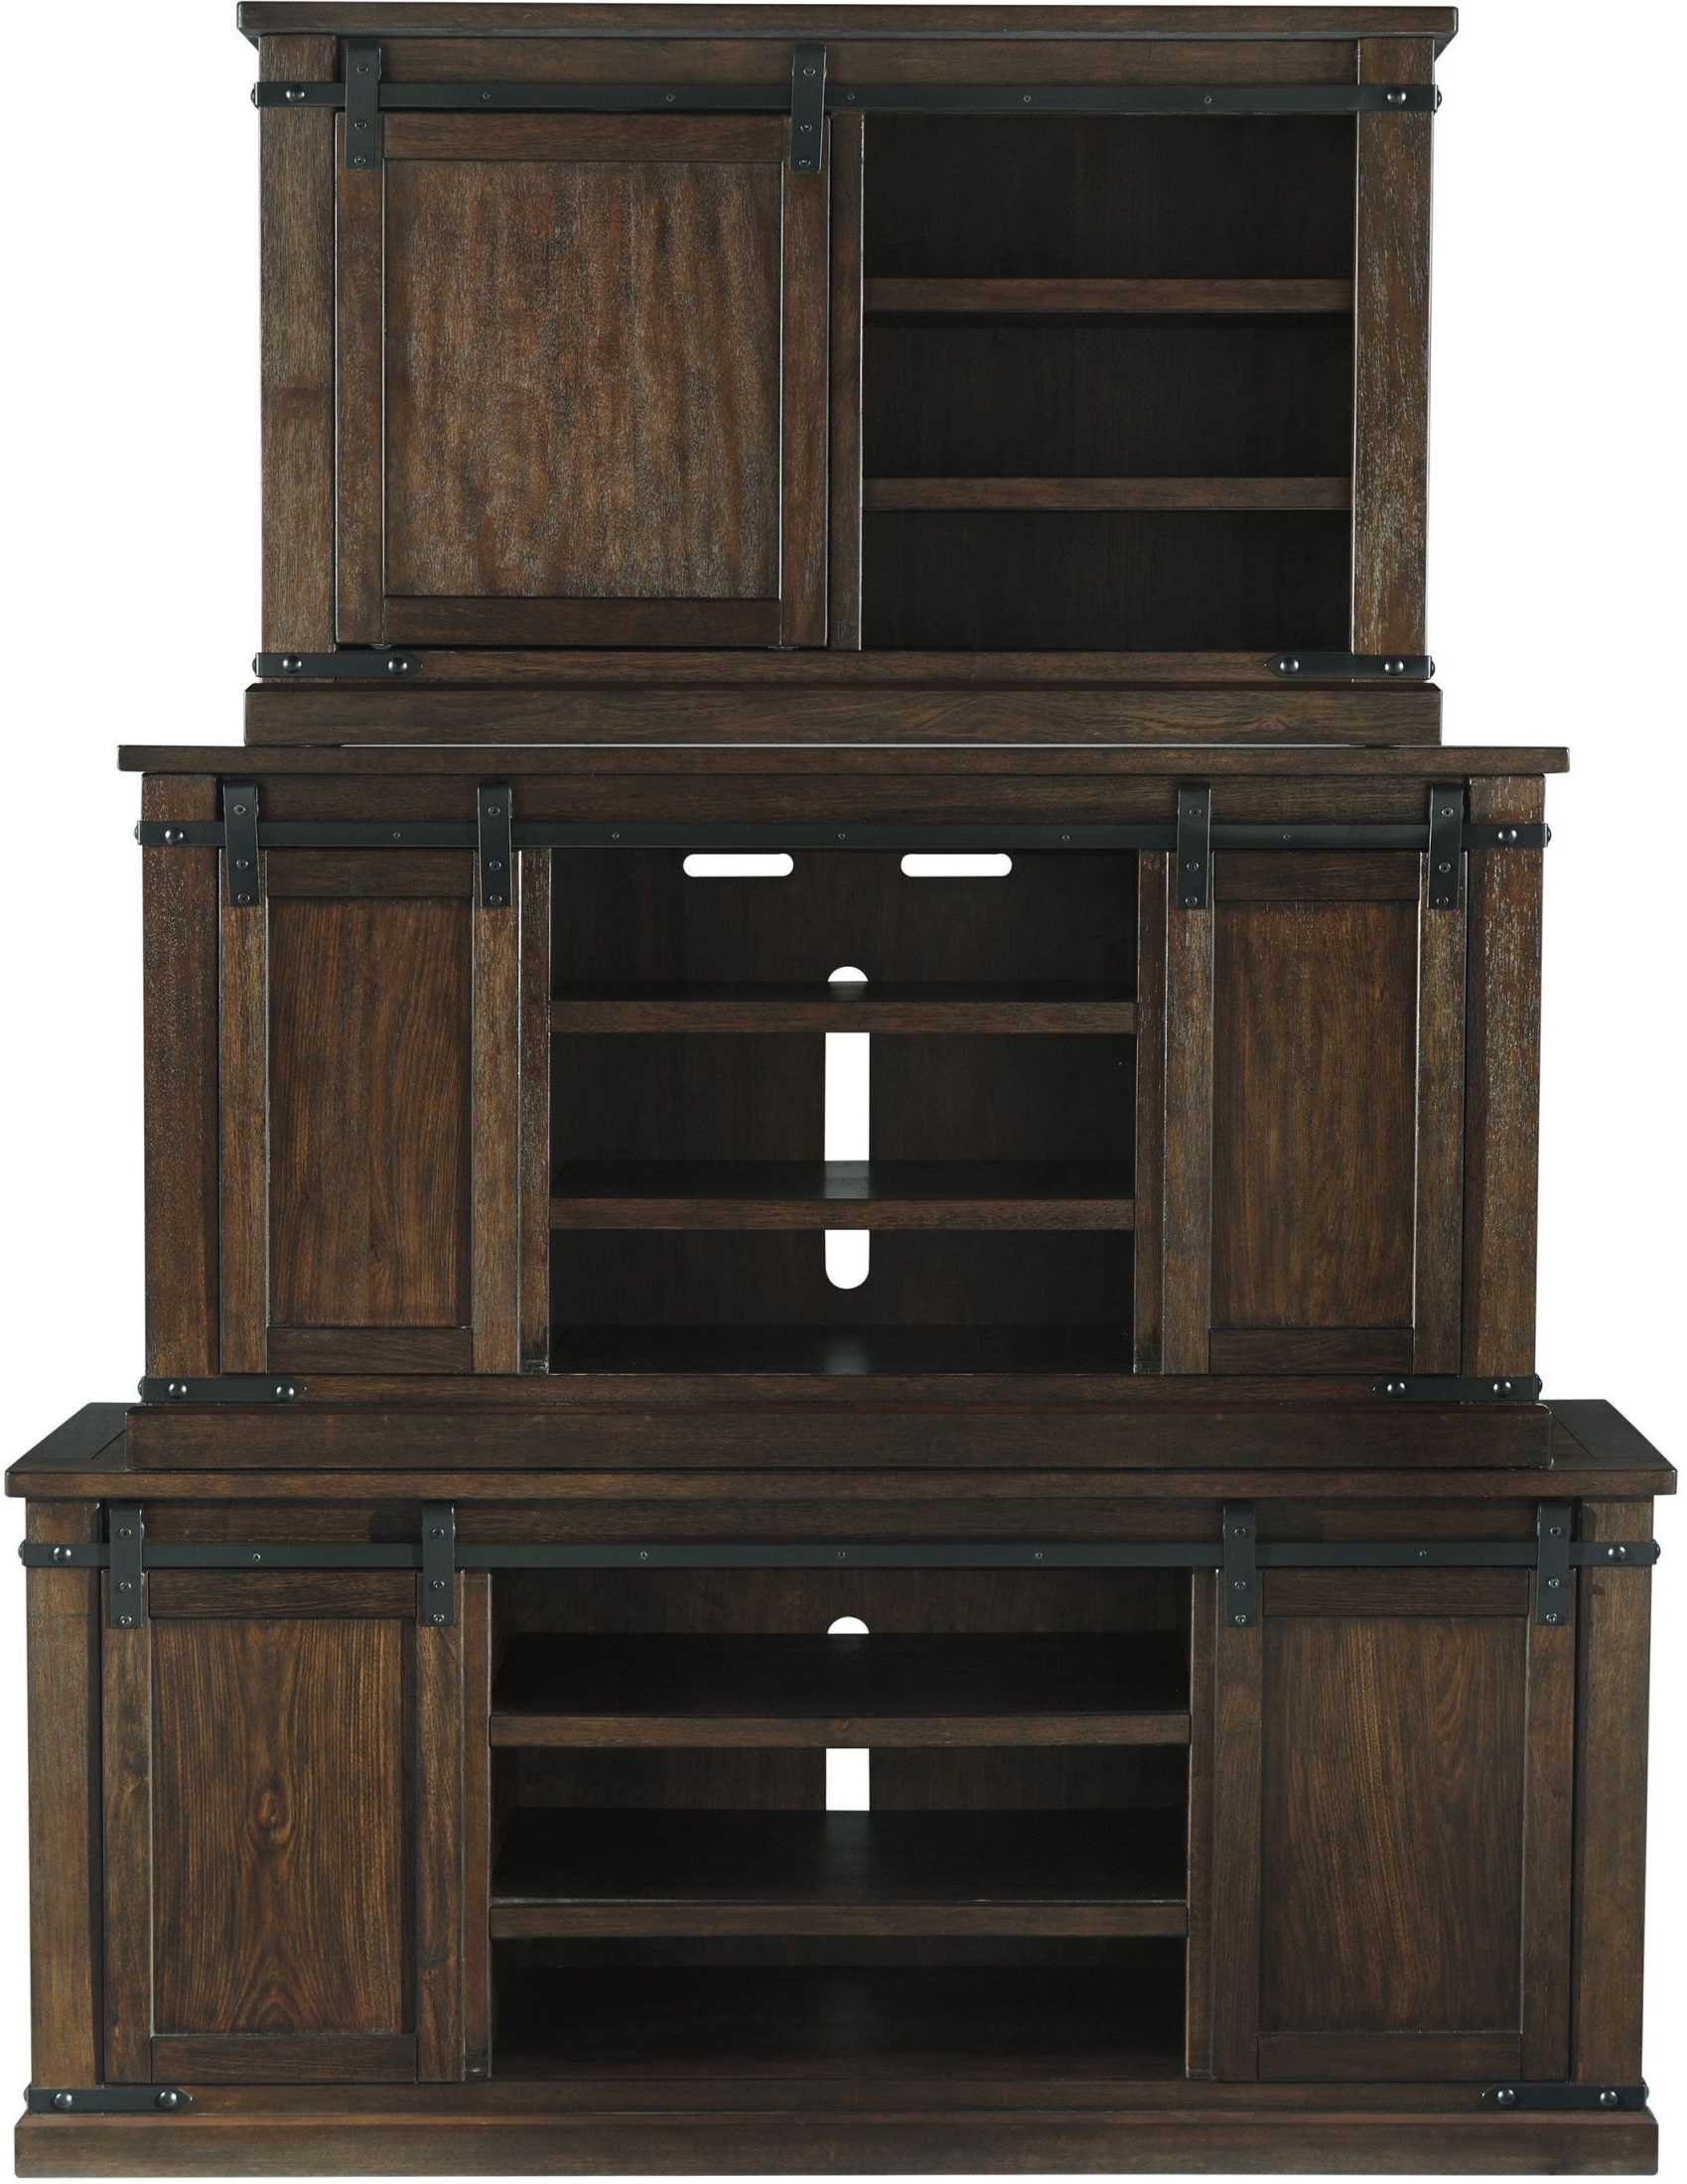 Coleman Pertaining To Tv Stands (View 6 of 16)